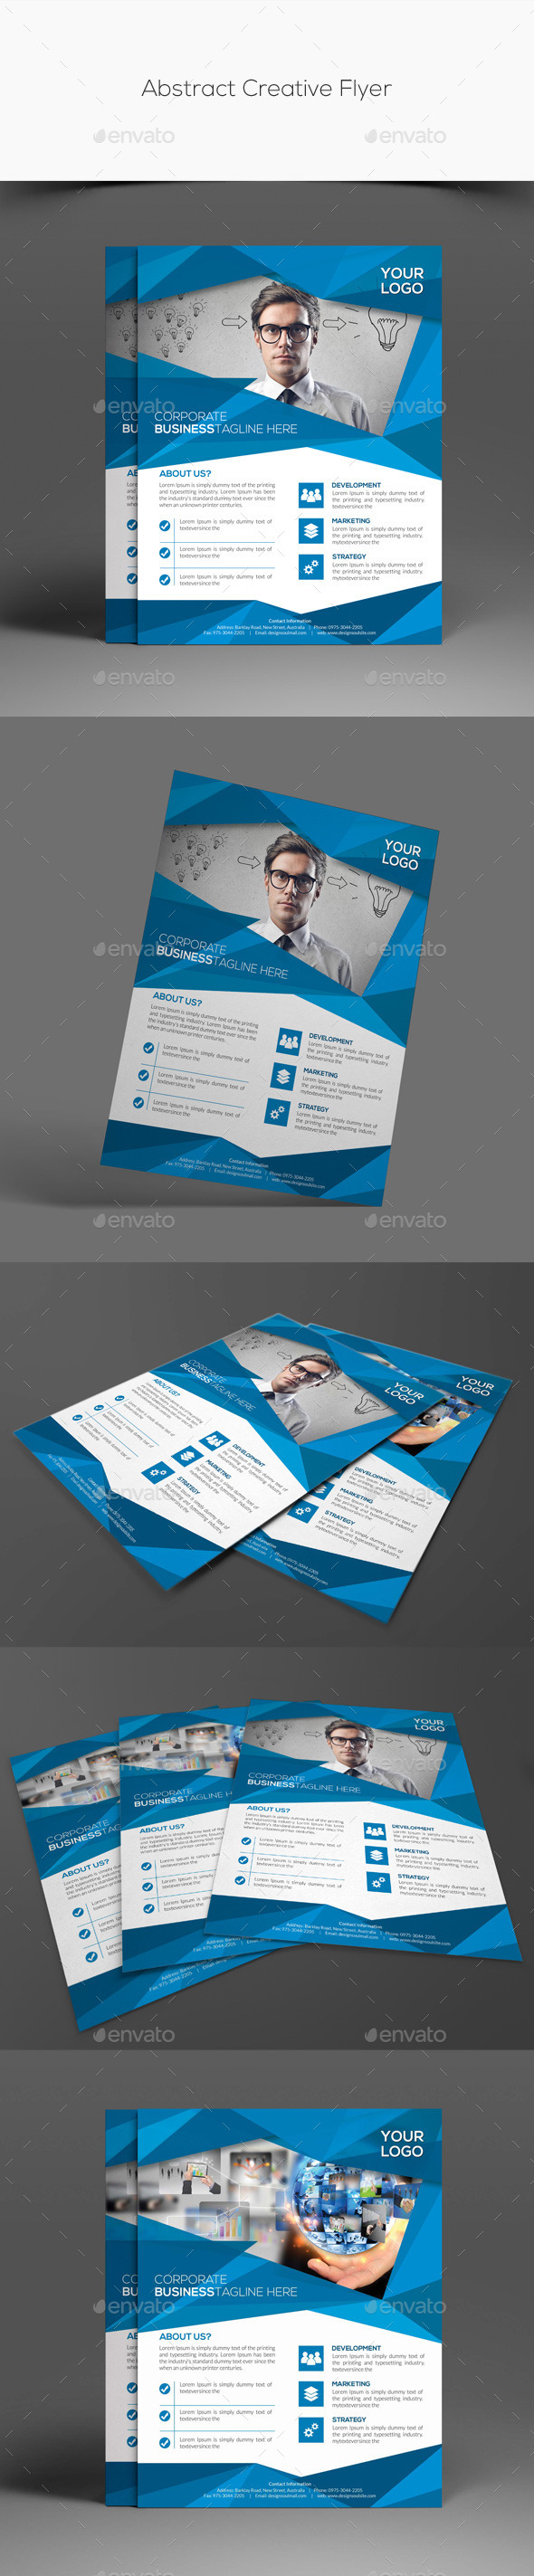 GraphicRiver Abstract Creative Flyer 11259199